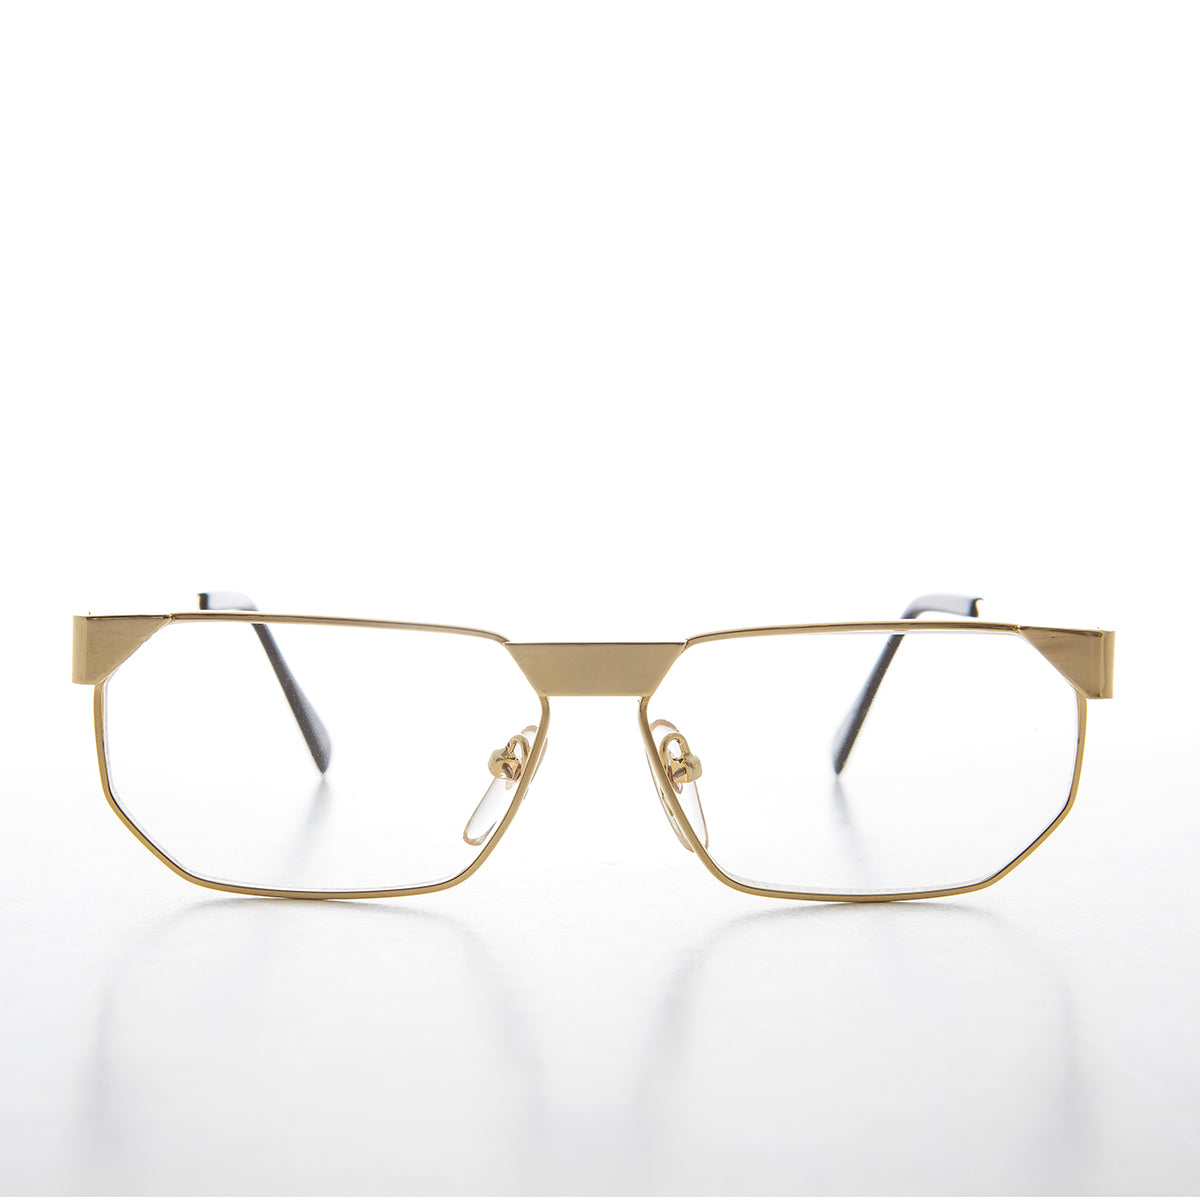 bc530f98c545 Gold polygon frame vintage glasses clifton sunglass museum jpg 1200x1200  Glasses from the 80s